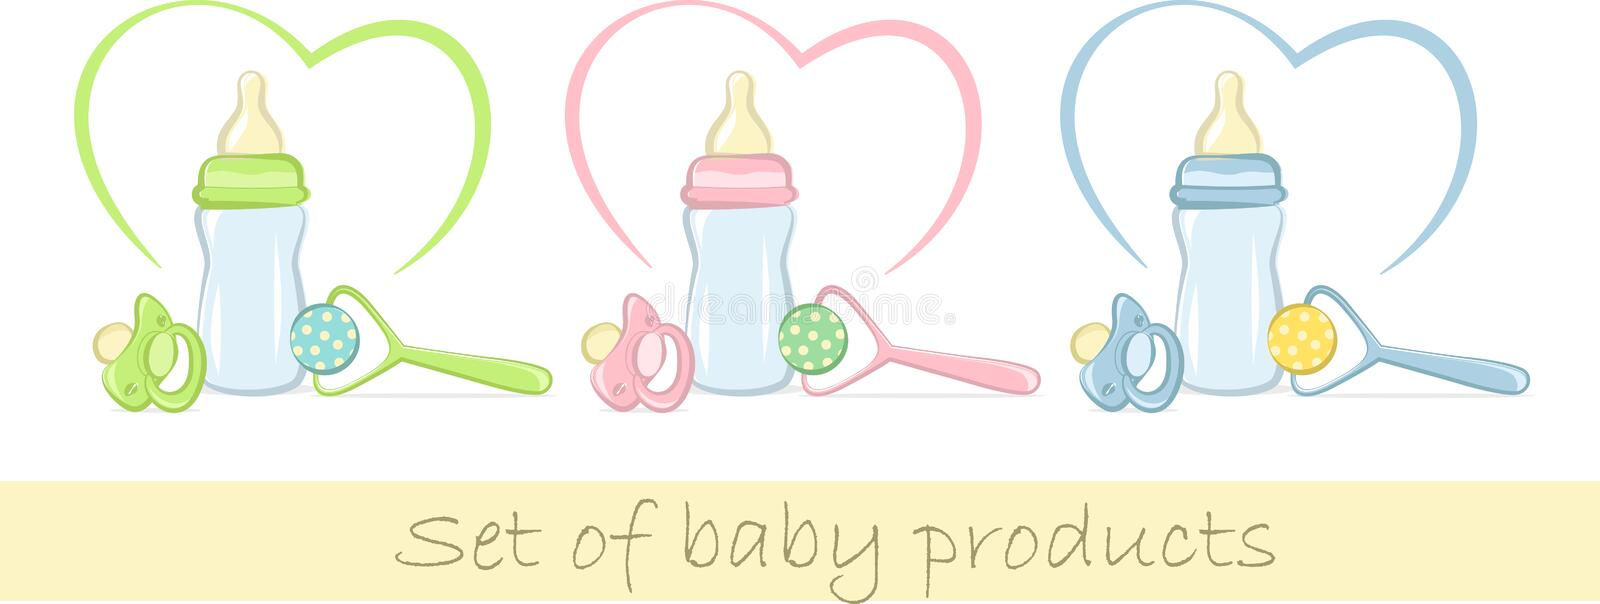 Download Set Of Baby Products In Gentle Colors Stock Vector - Illustration of icon, bottle: 22205503